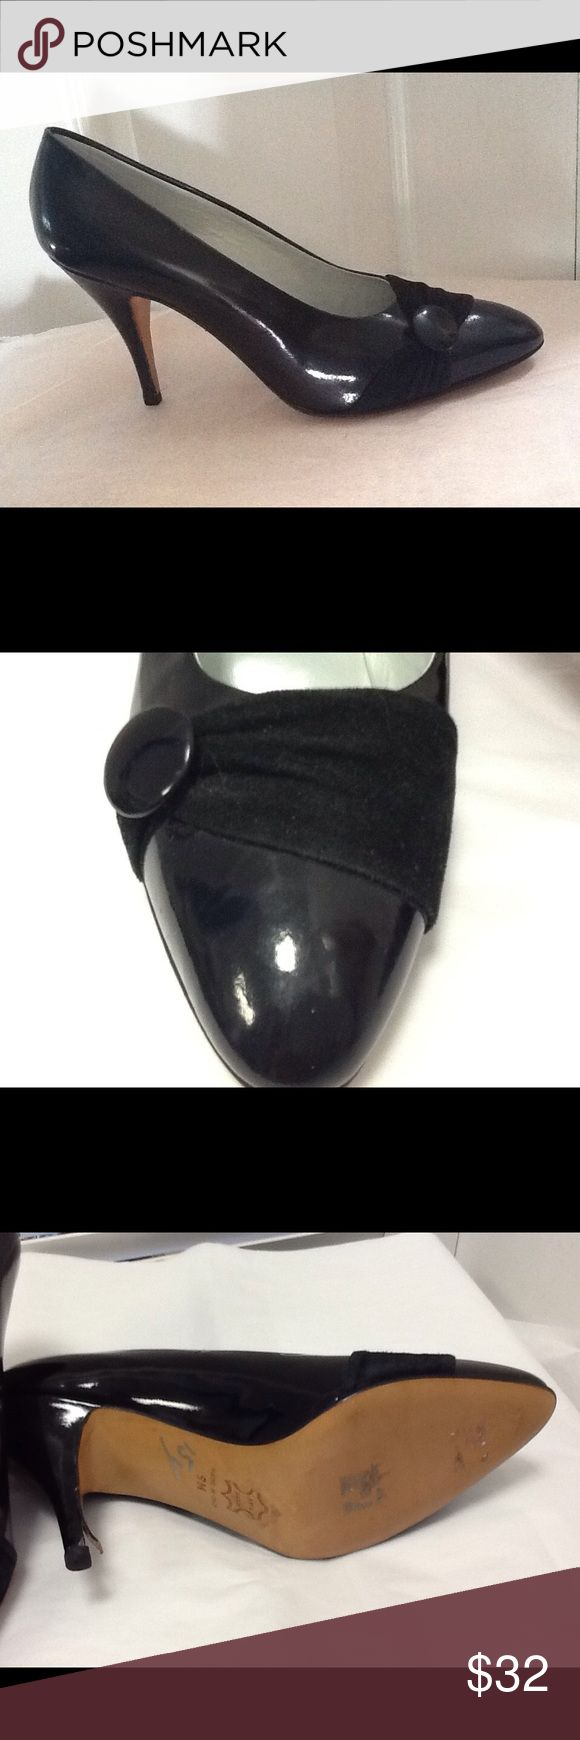 Martinelli di Mola black patent leather shoes Sz 9 Martinelli di Mola black patent leather shoes Sz 9 Martinelli di Mola Shoes Heels